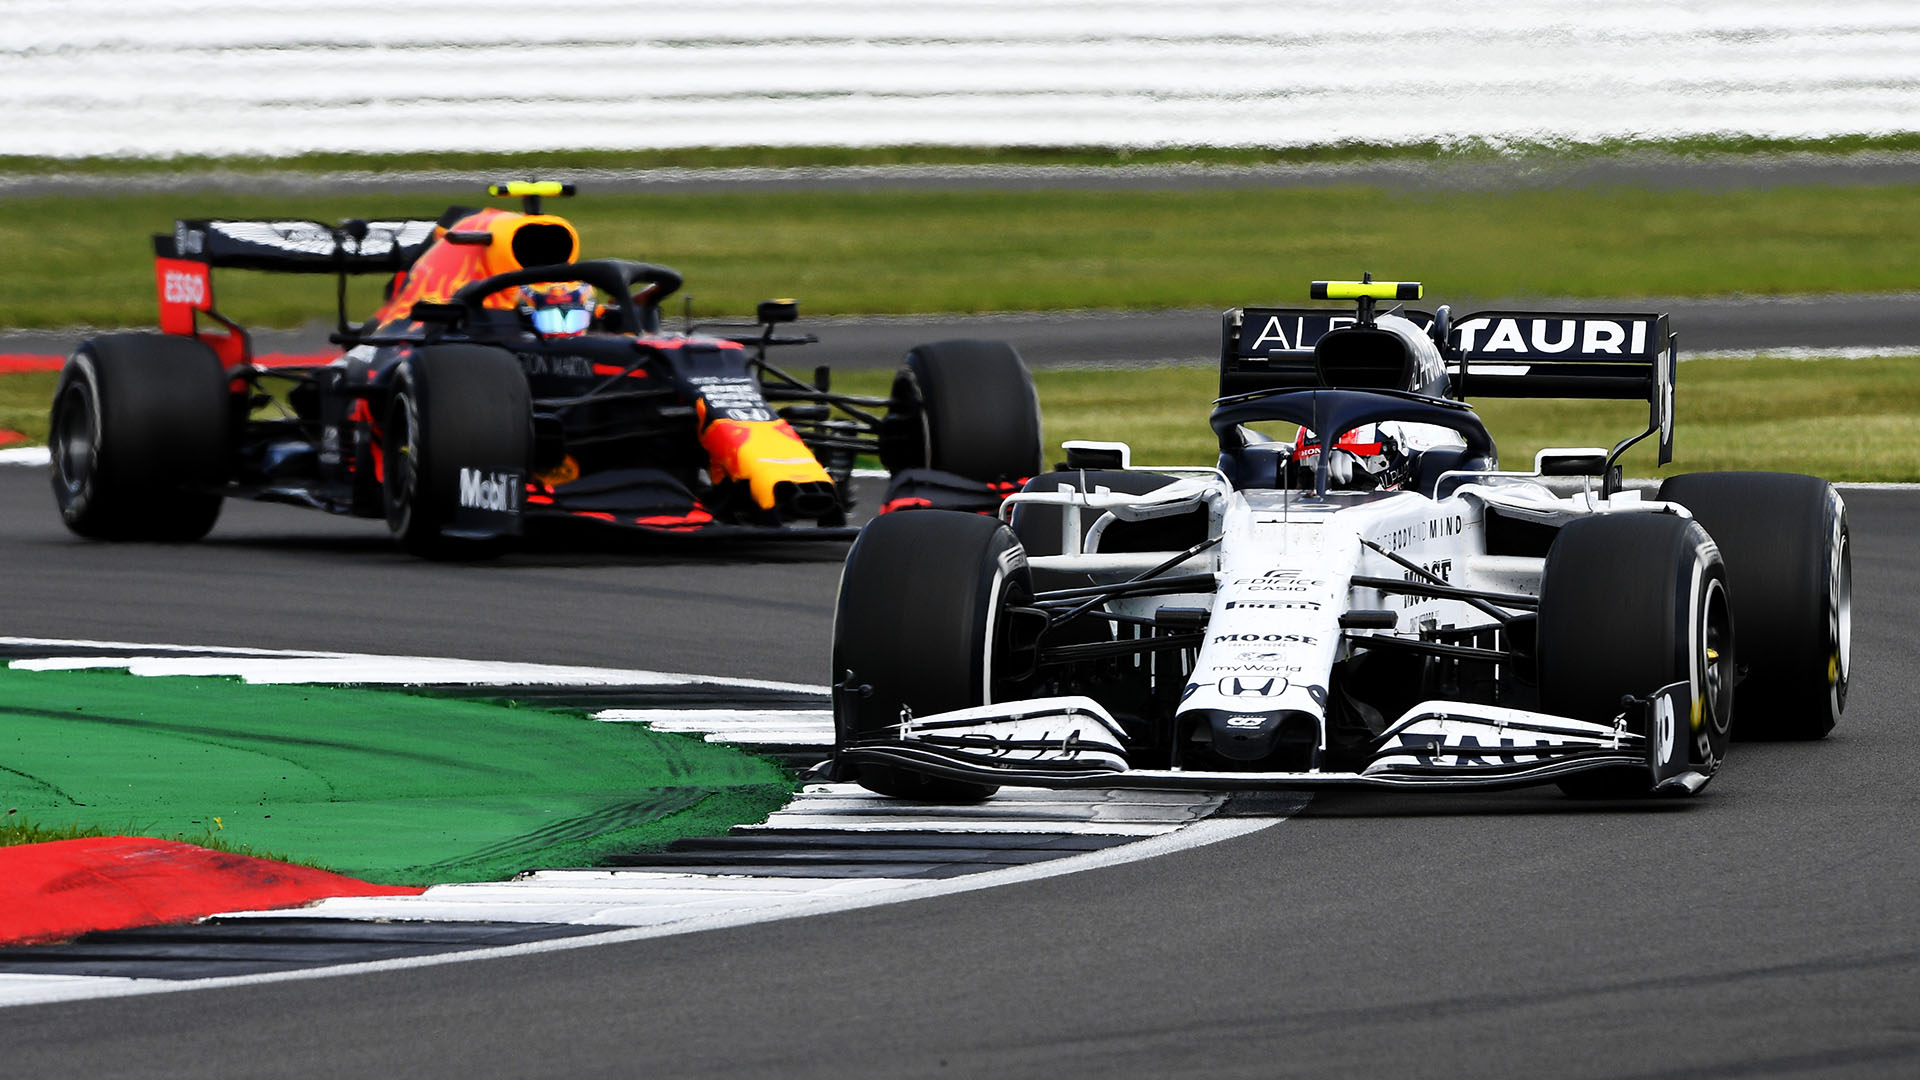 ANALYSIS: What does AlphaTauri's switch from Red Bull's 'junior' to 'sister' team actually mean? | Formula 1®